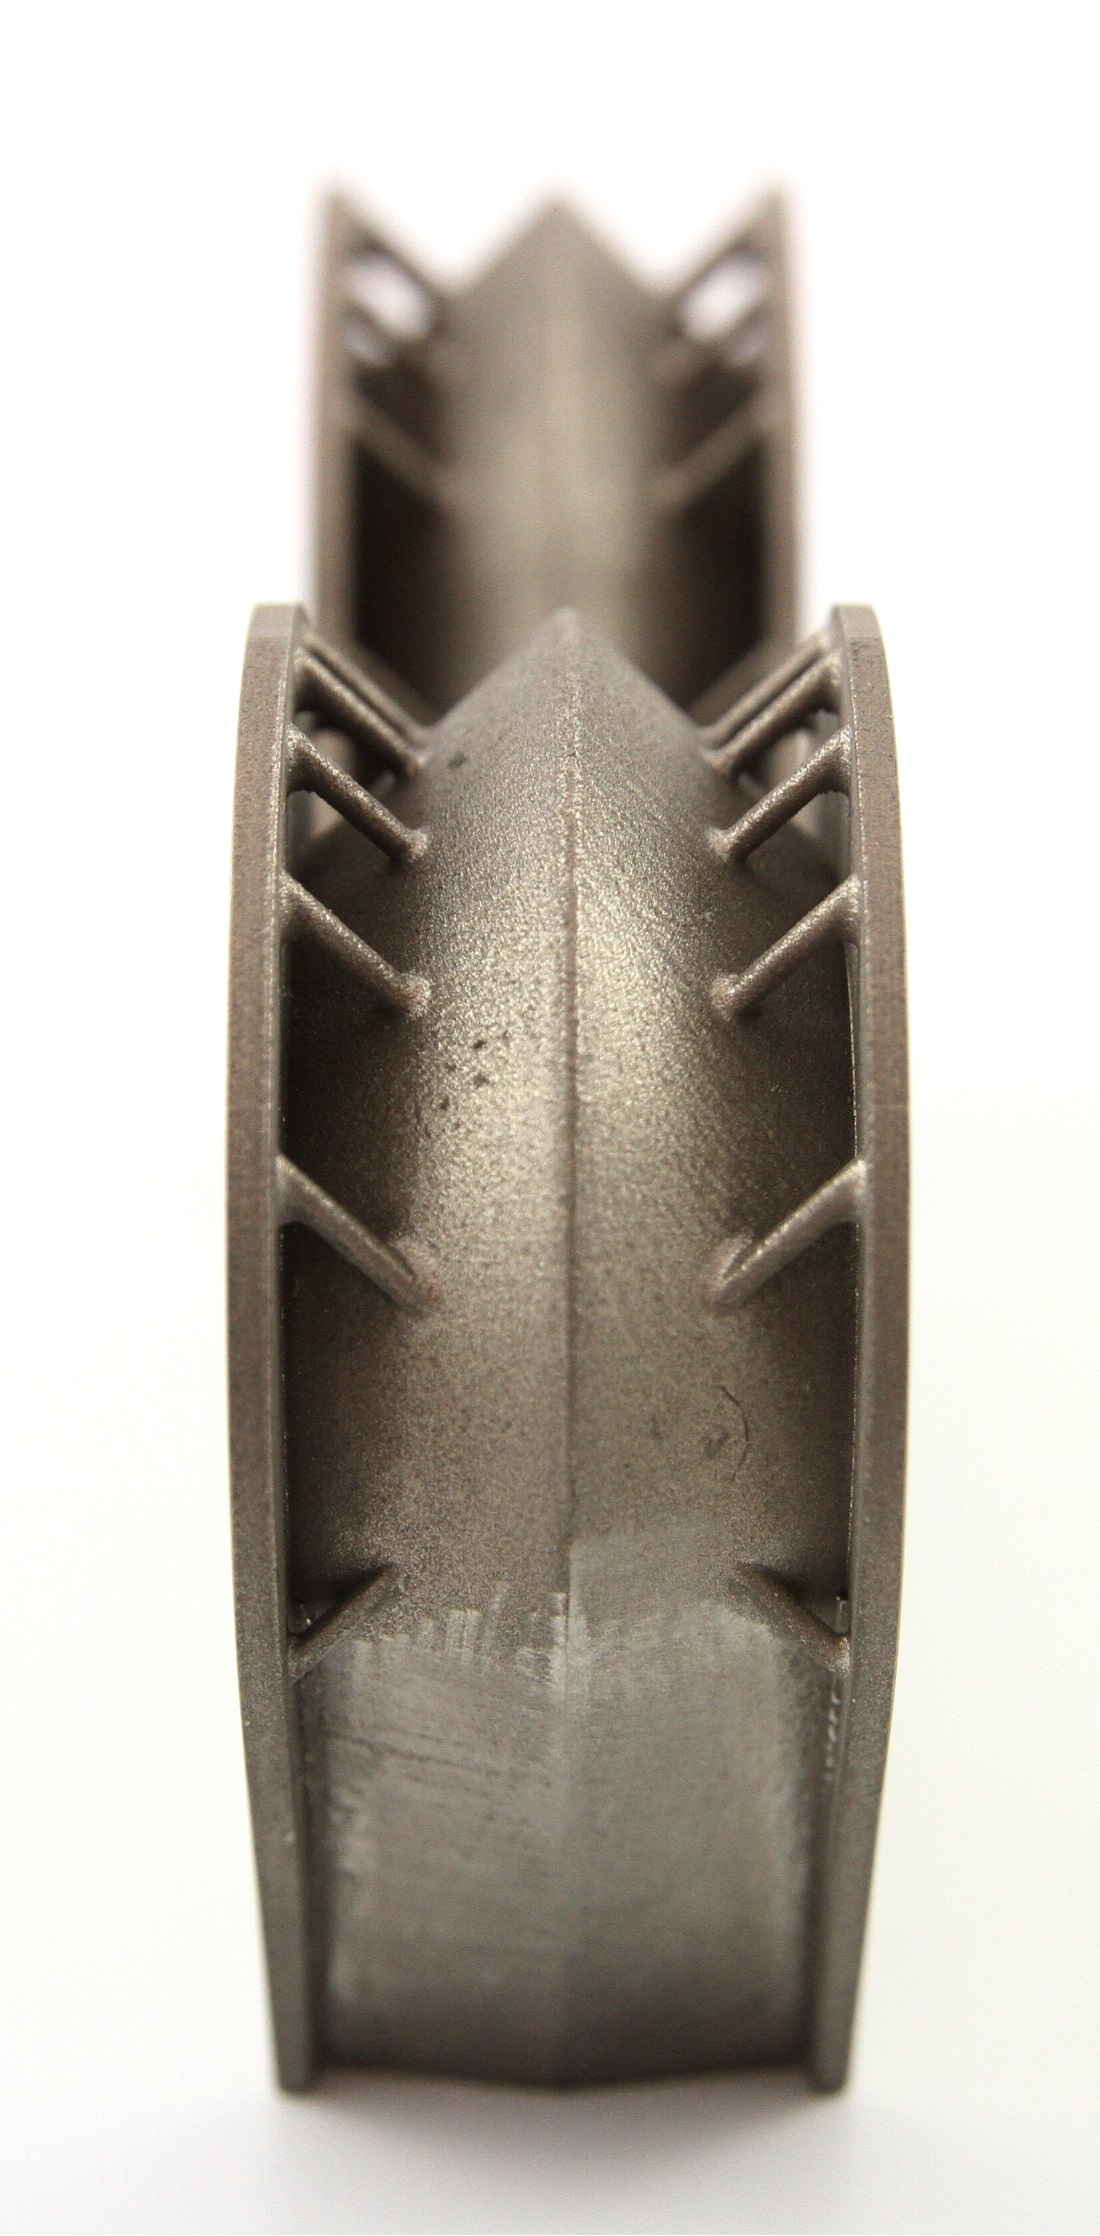 Titanium insert for spacecraft